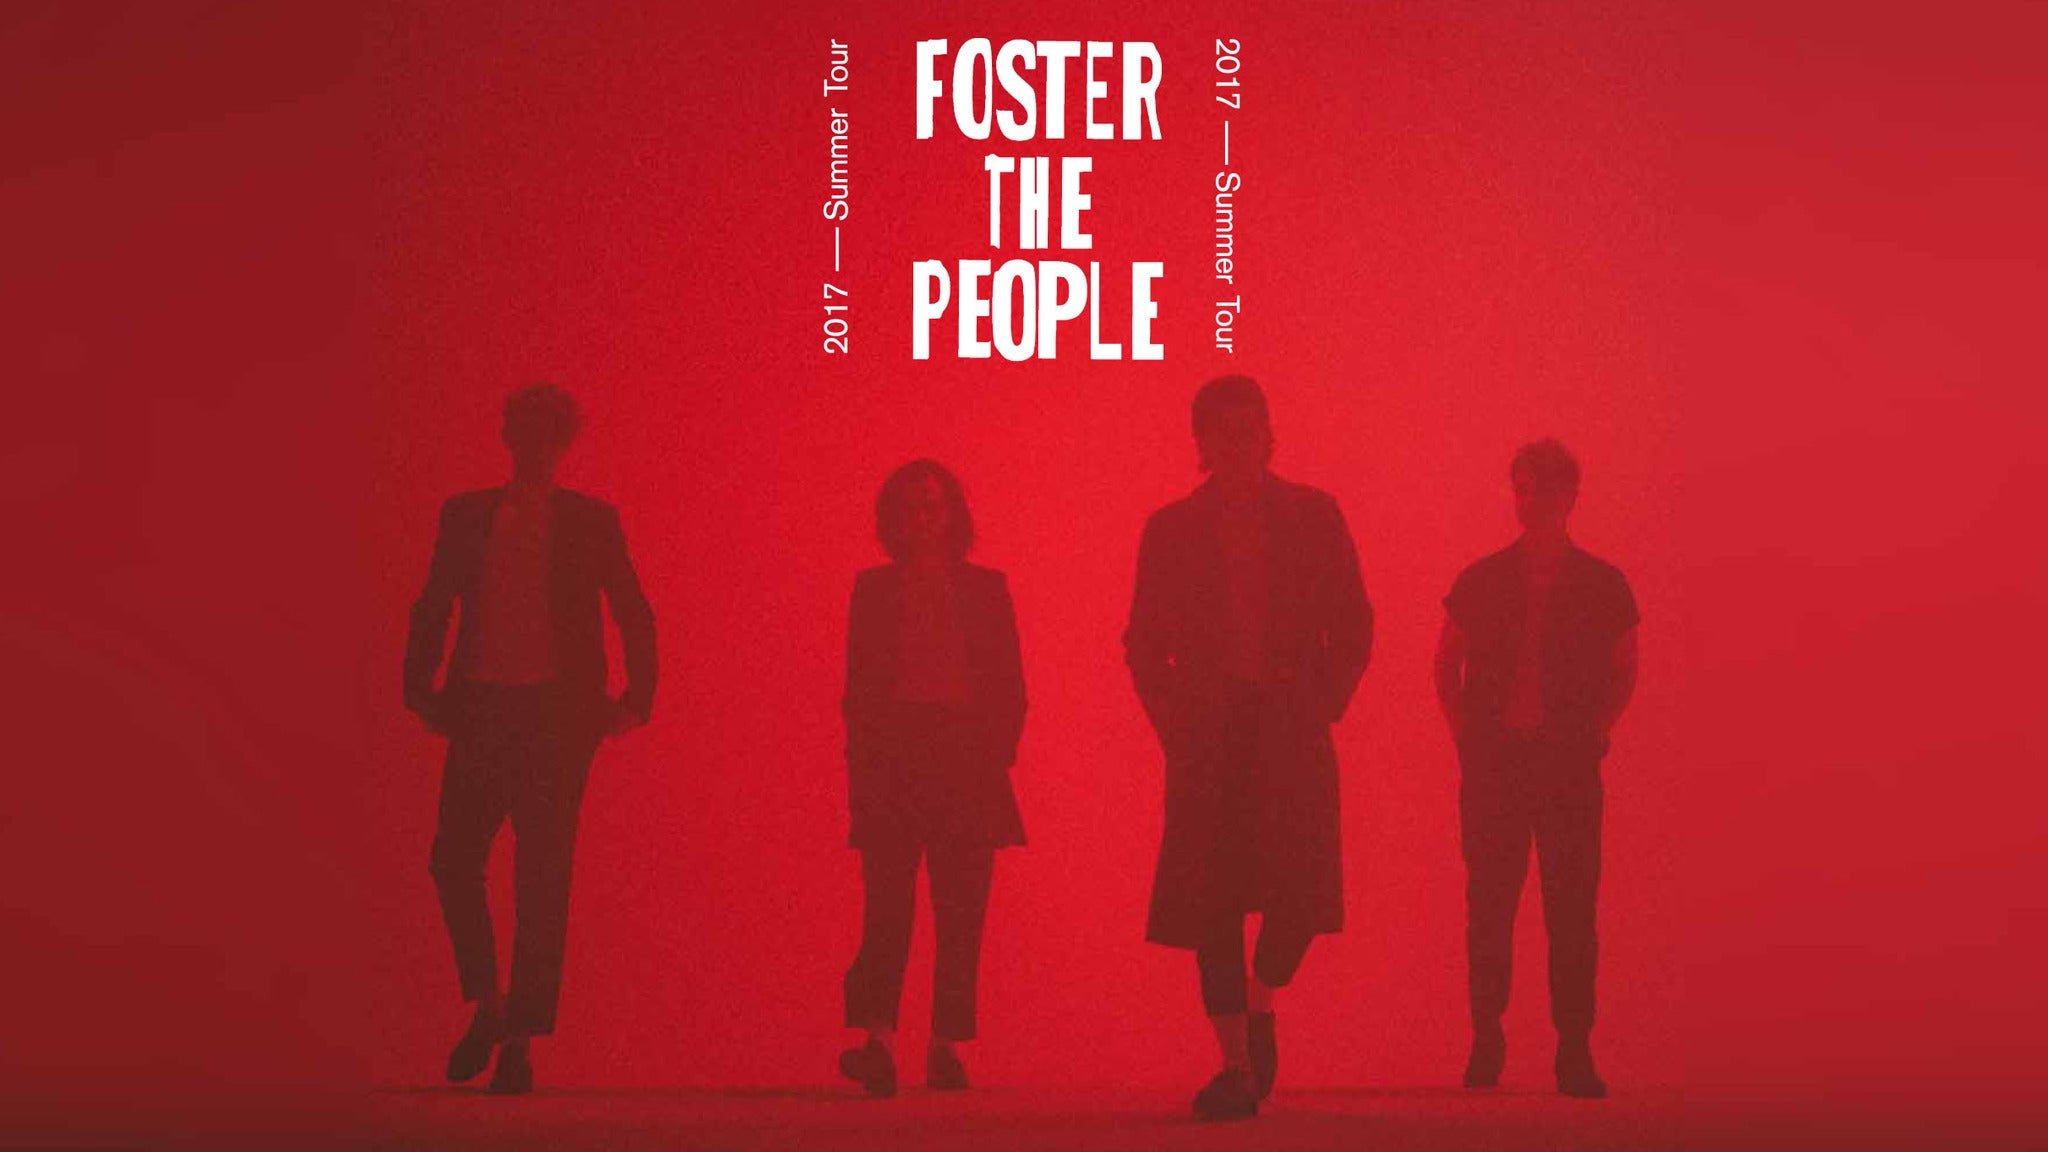 Foster the People at Nile Theater